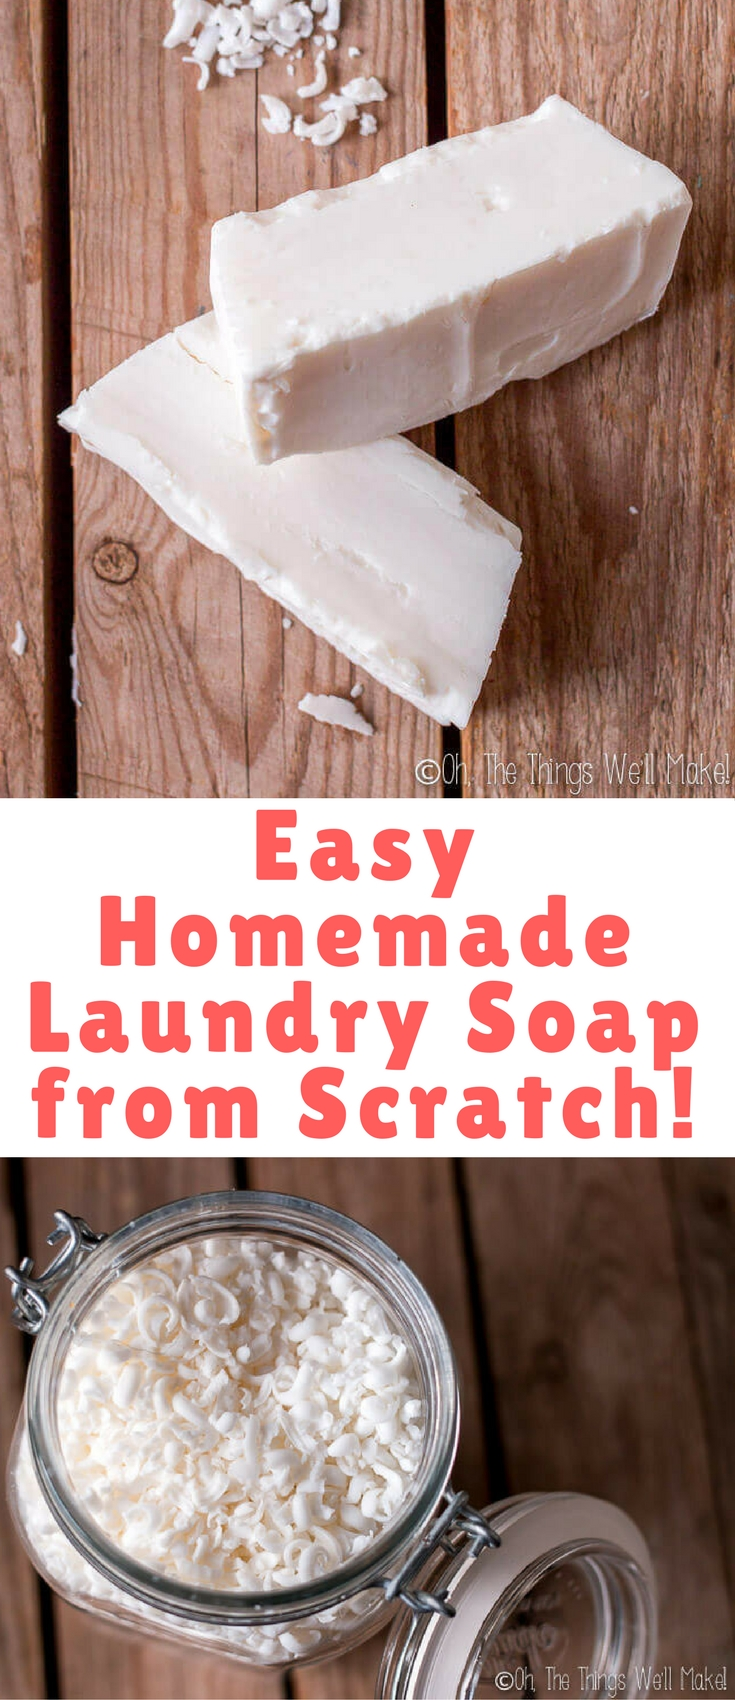 Even if you've never made soap before, you can quickly whip up this easy homemade laundry soap from scratch. It's perfect for beginners!